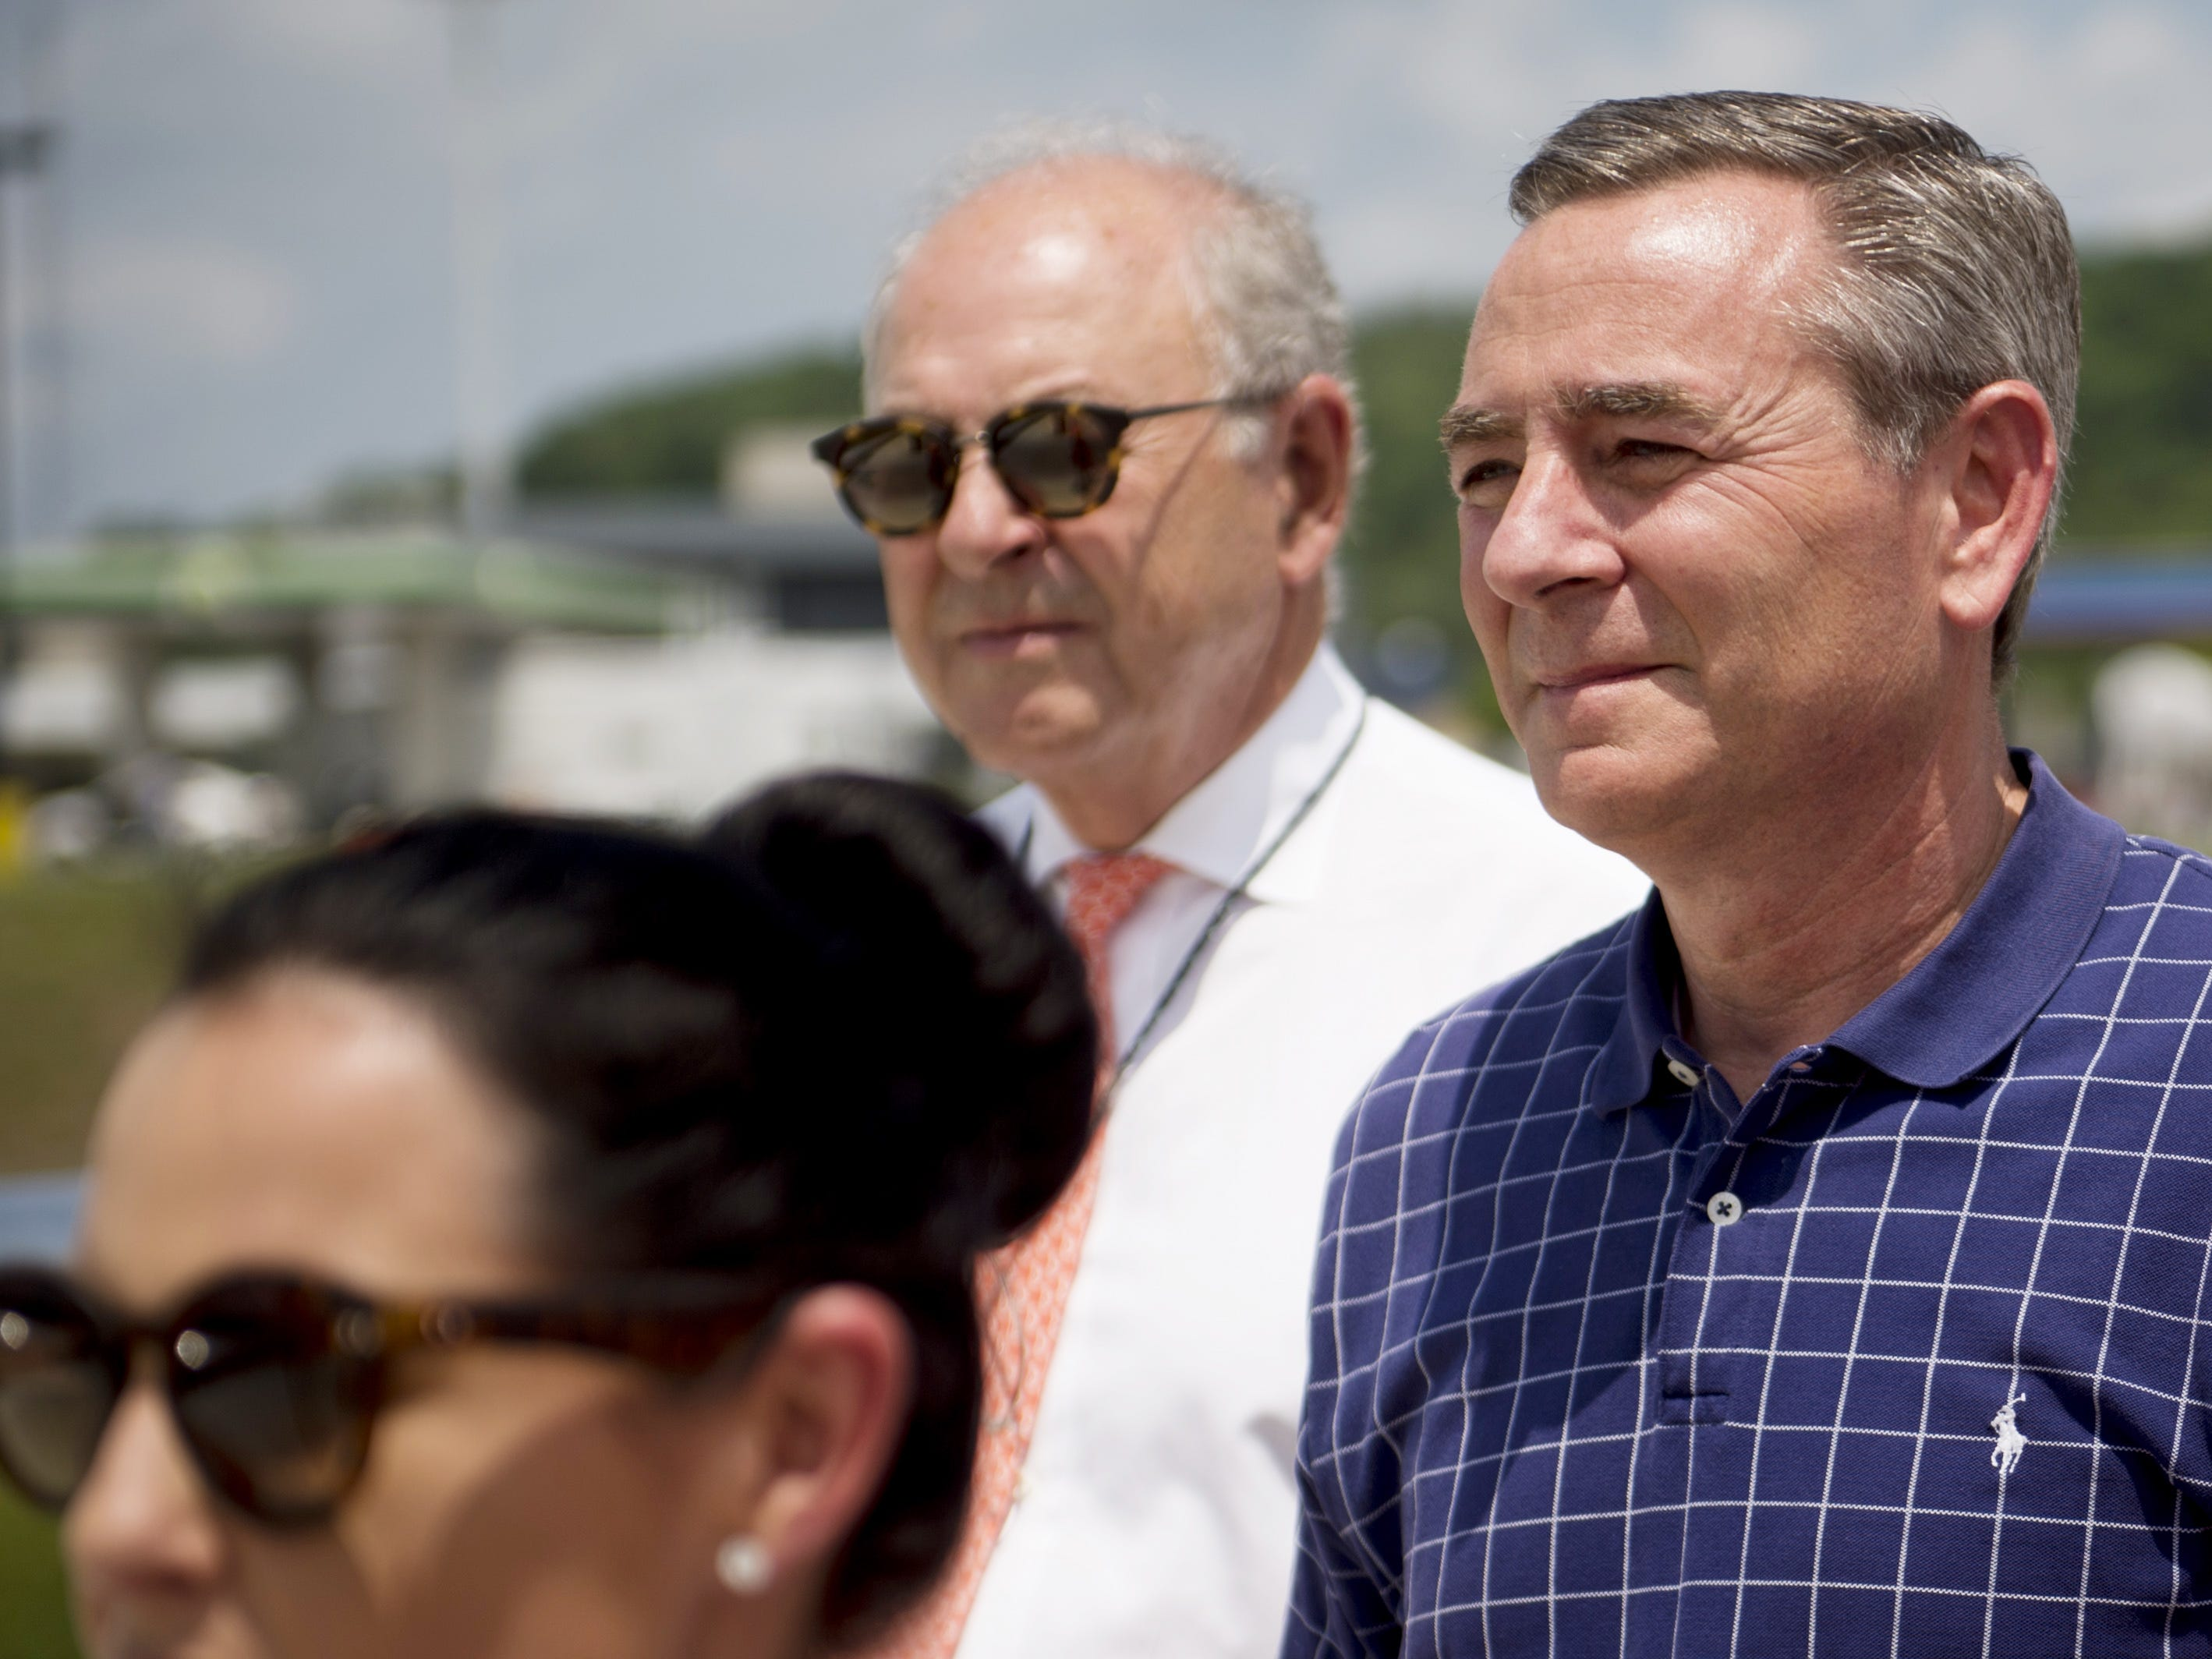 Rep. Glen Casada, right, looks on during the ribbon-cutting ceremony for the Peytonsville Road bridge over Interstate 65 on June 15, 2016, in Franklin.